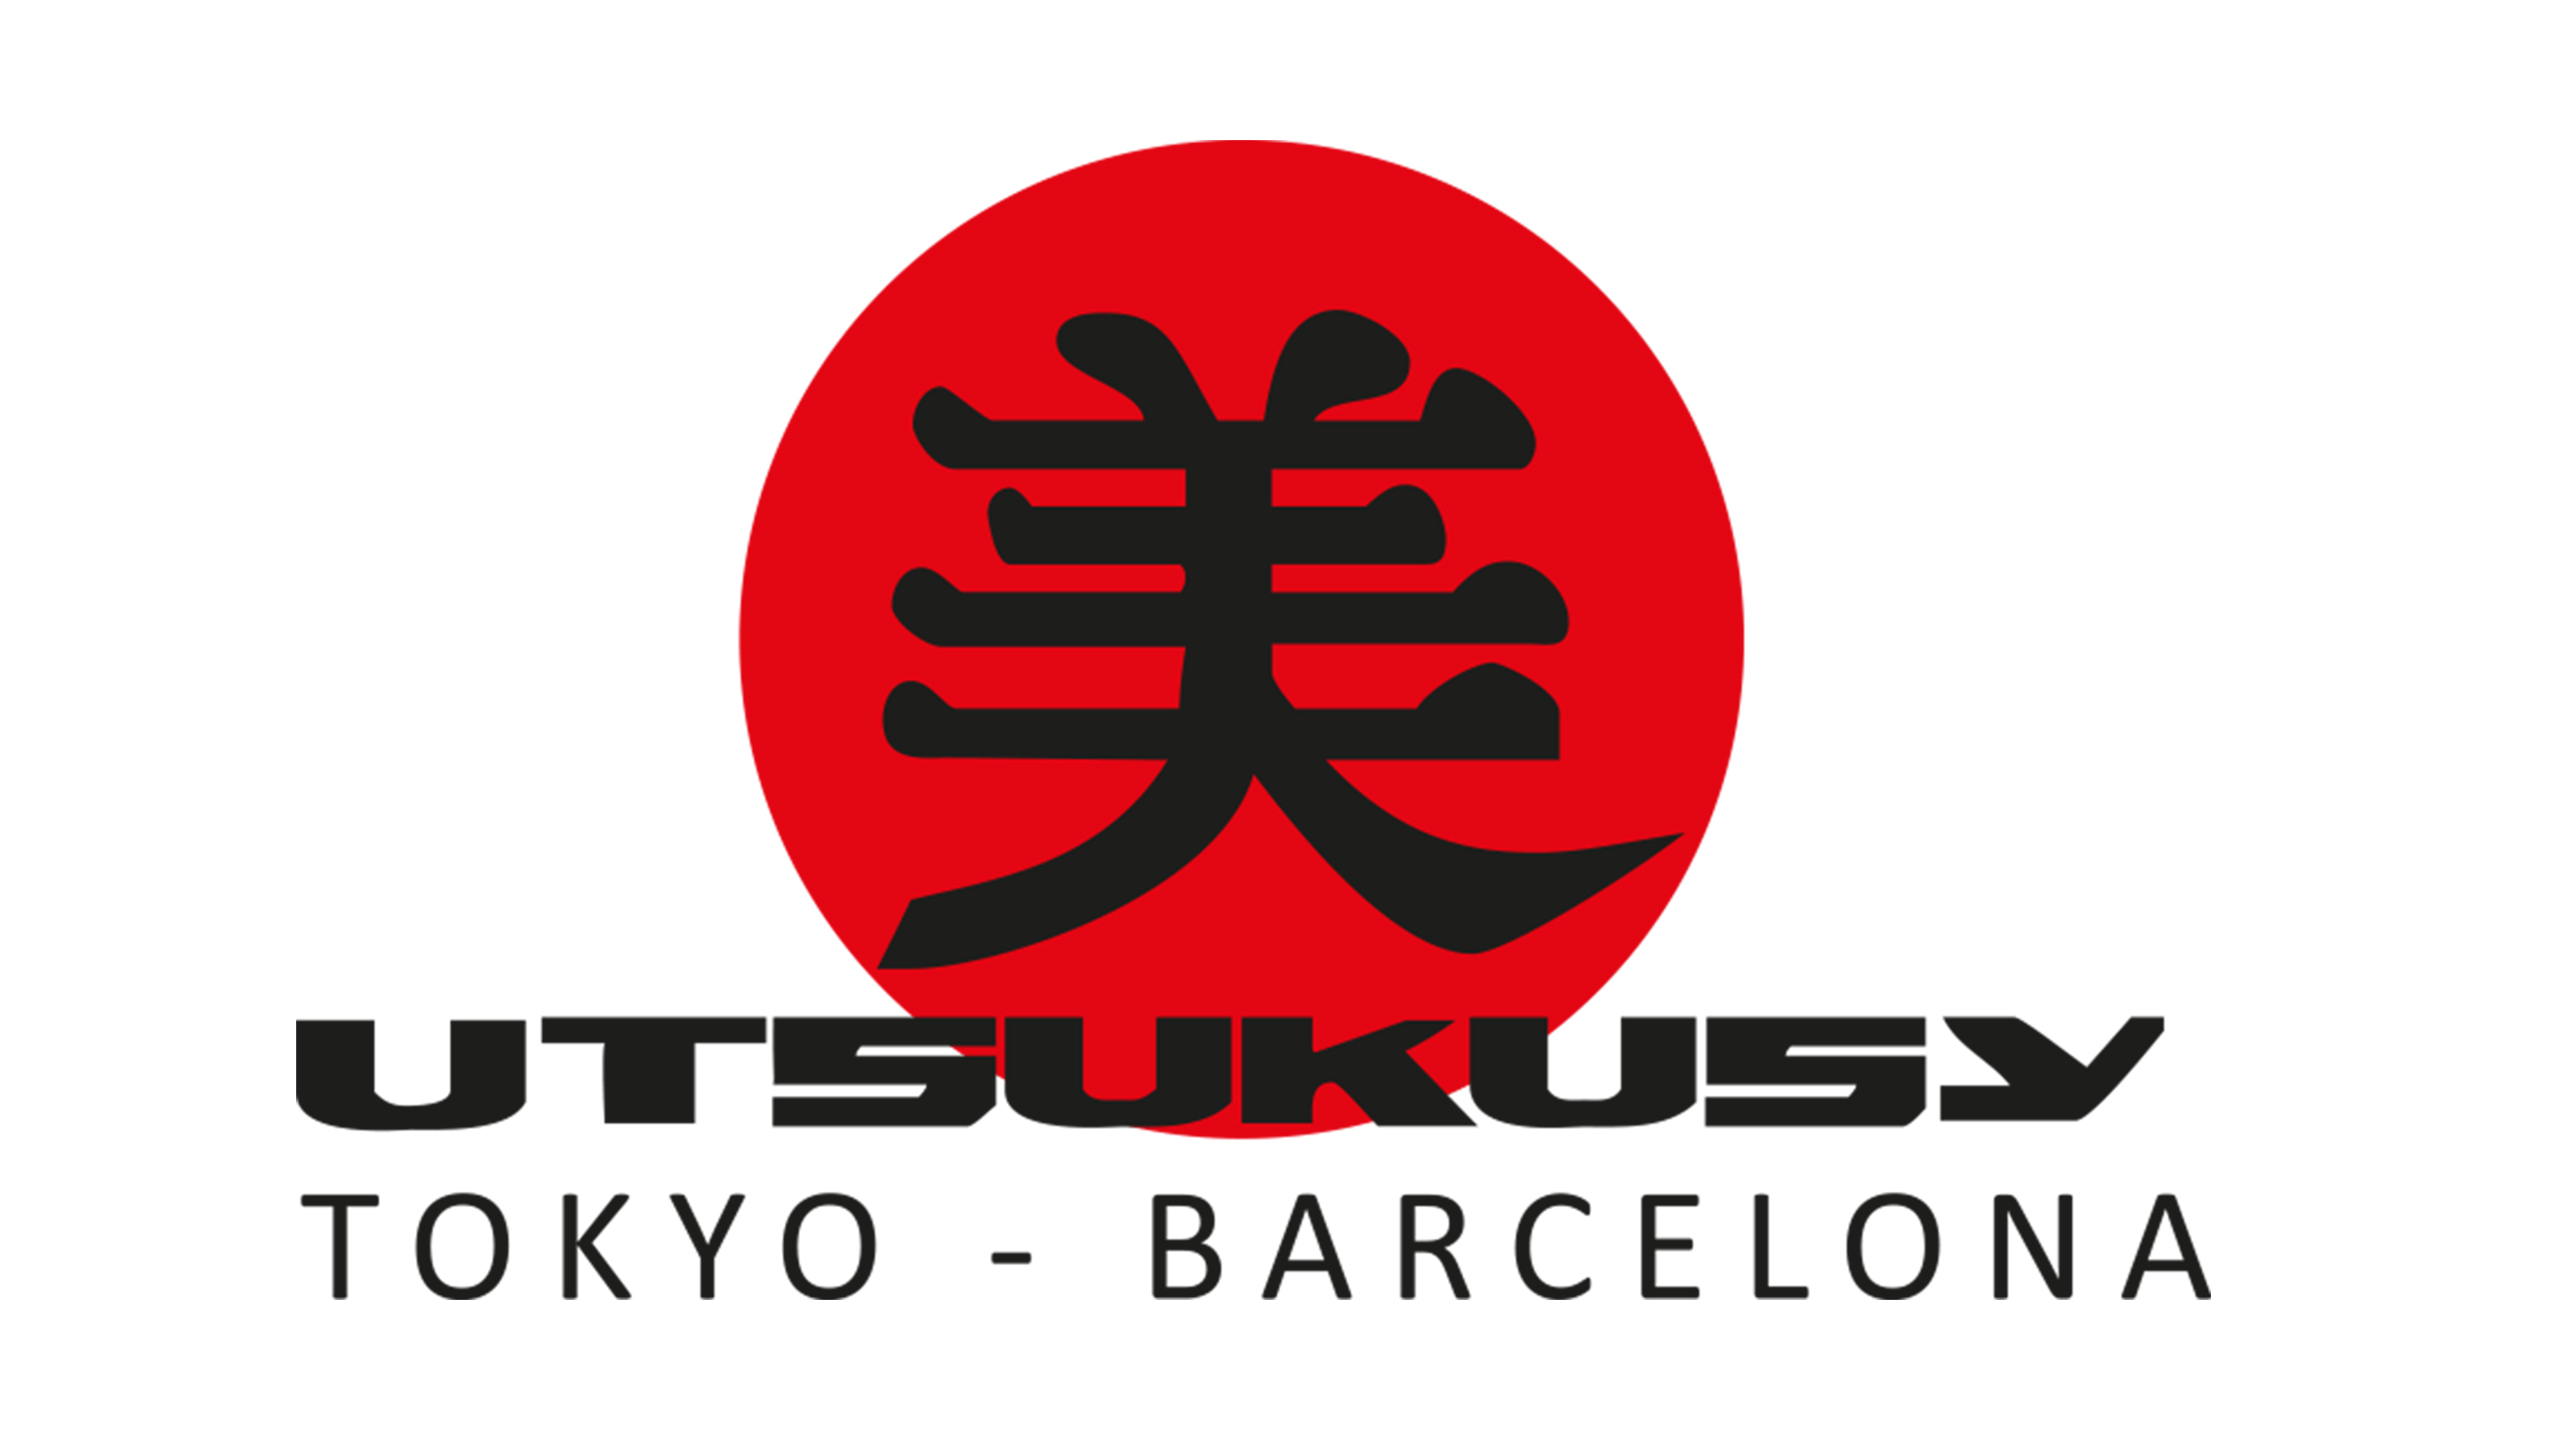 Logo youtube Utsukusy